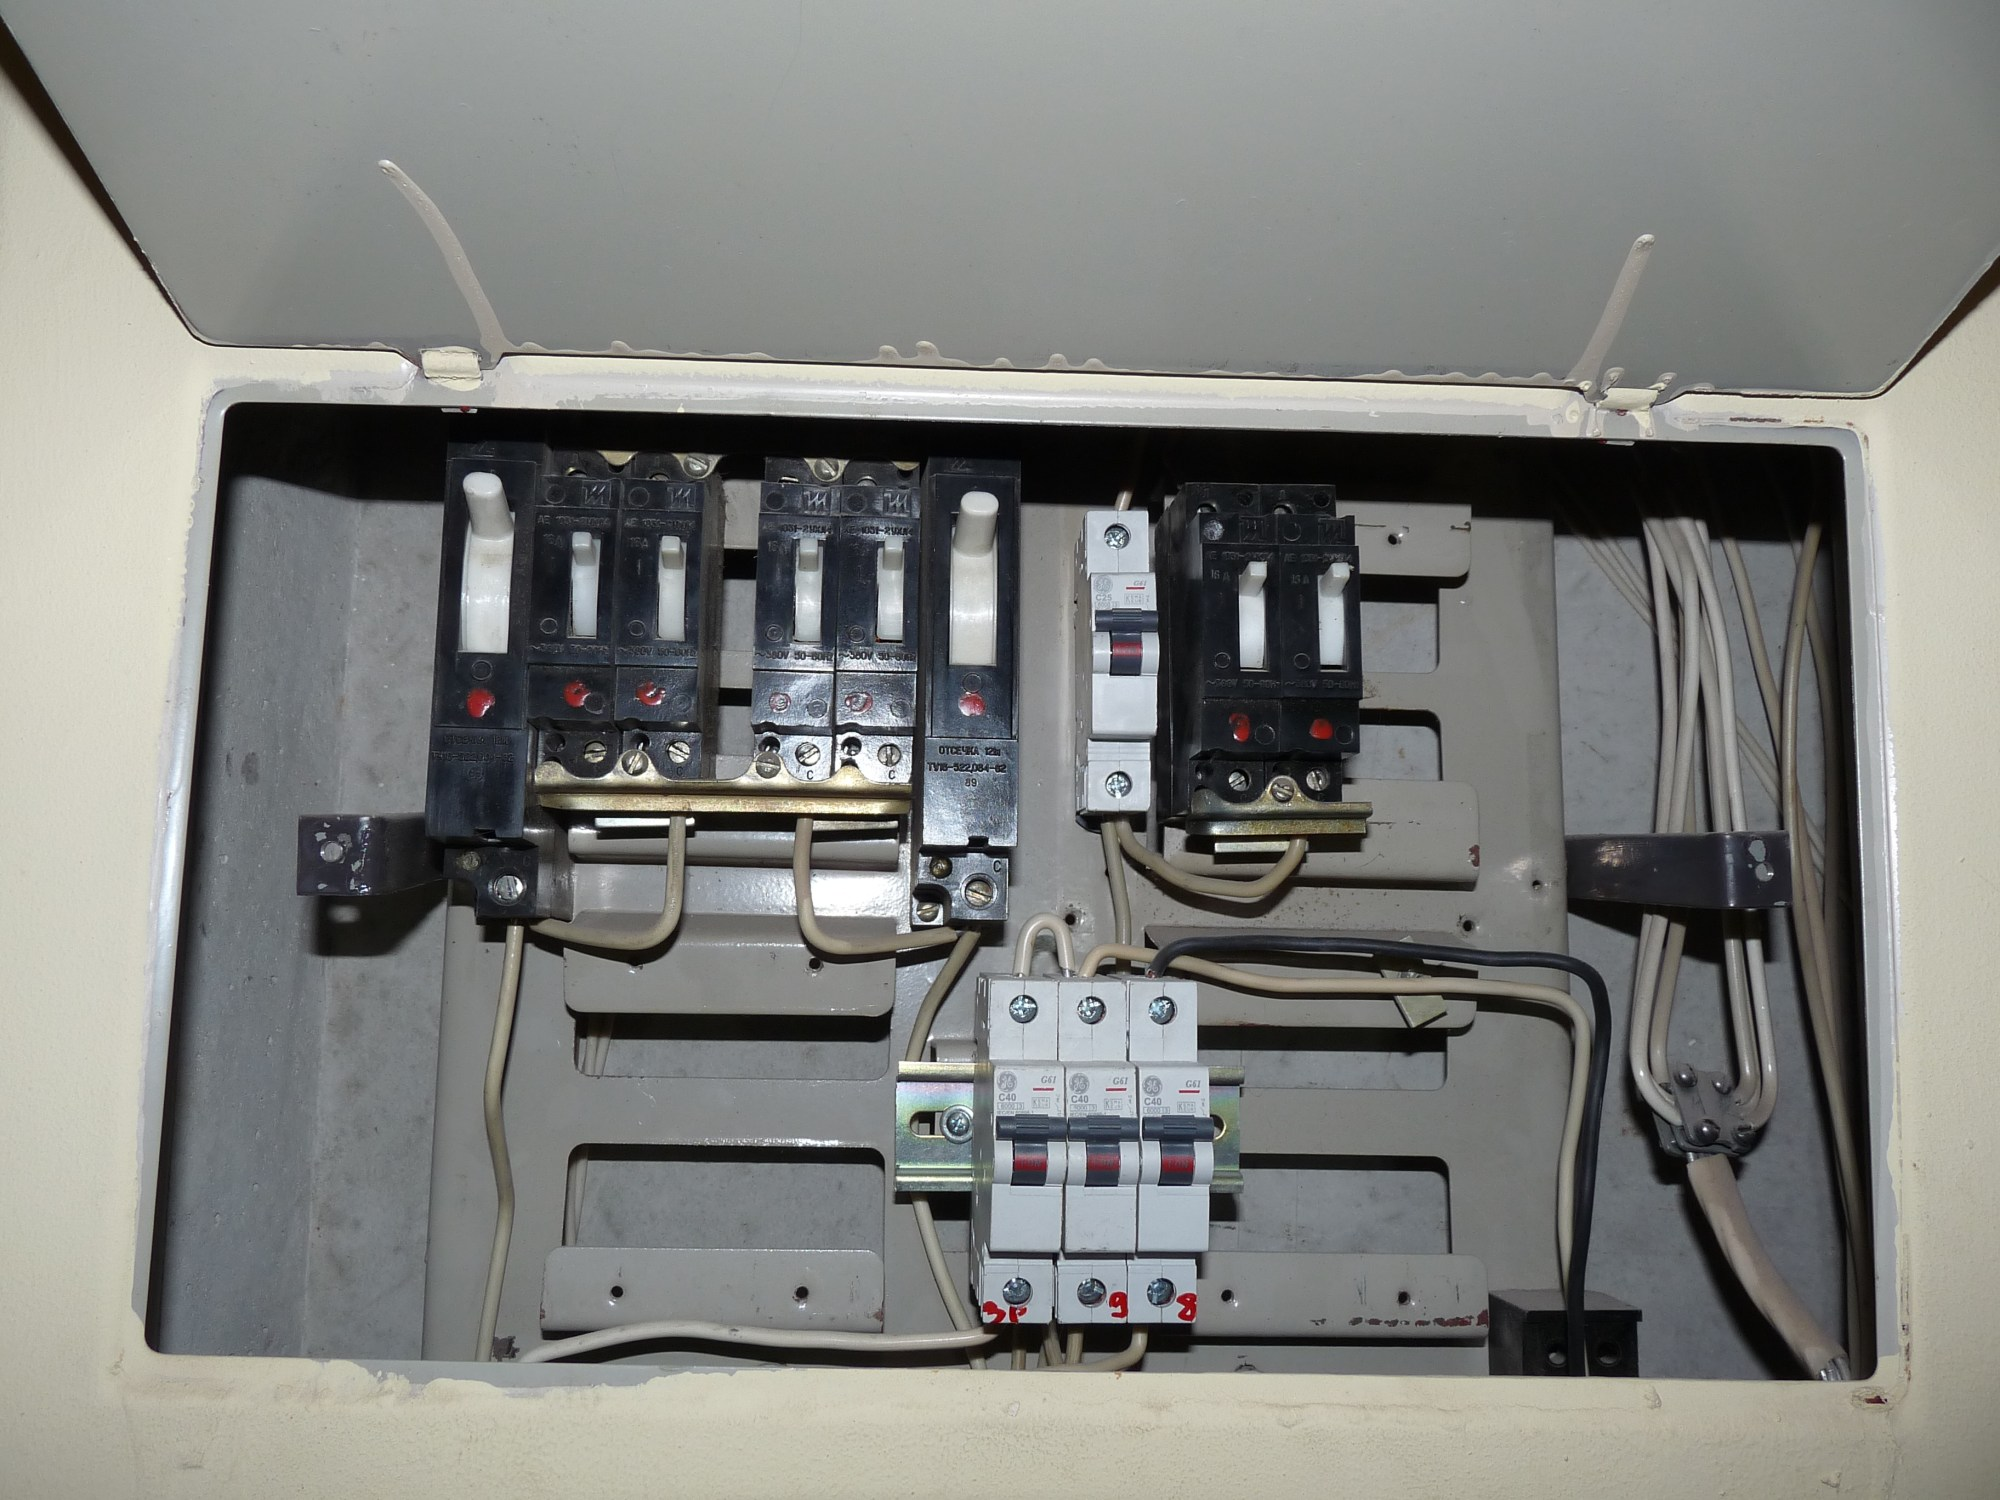 hight resolution of file fuse box in old apartment building jpg wikimedia commons junction box file fuse box in